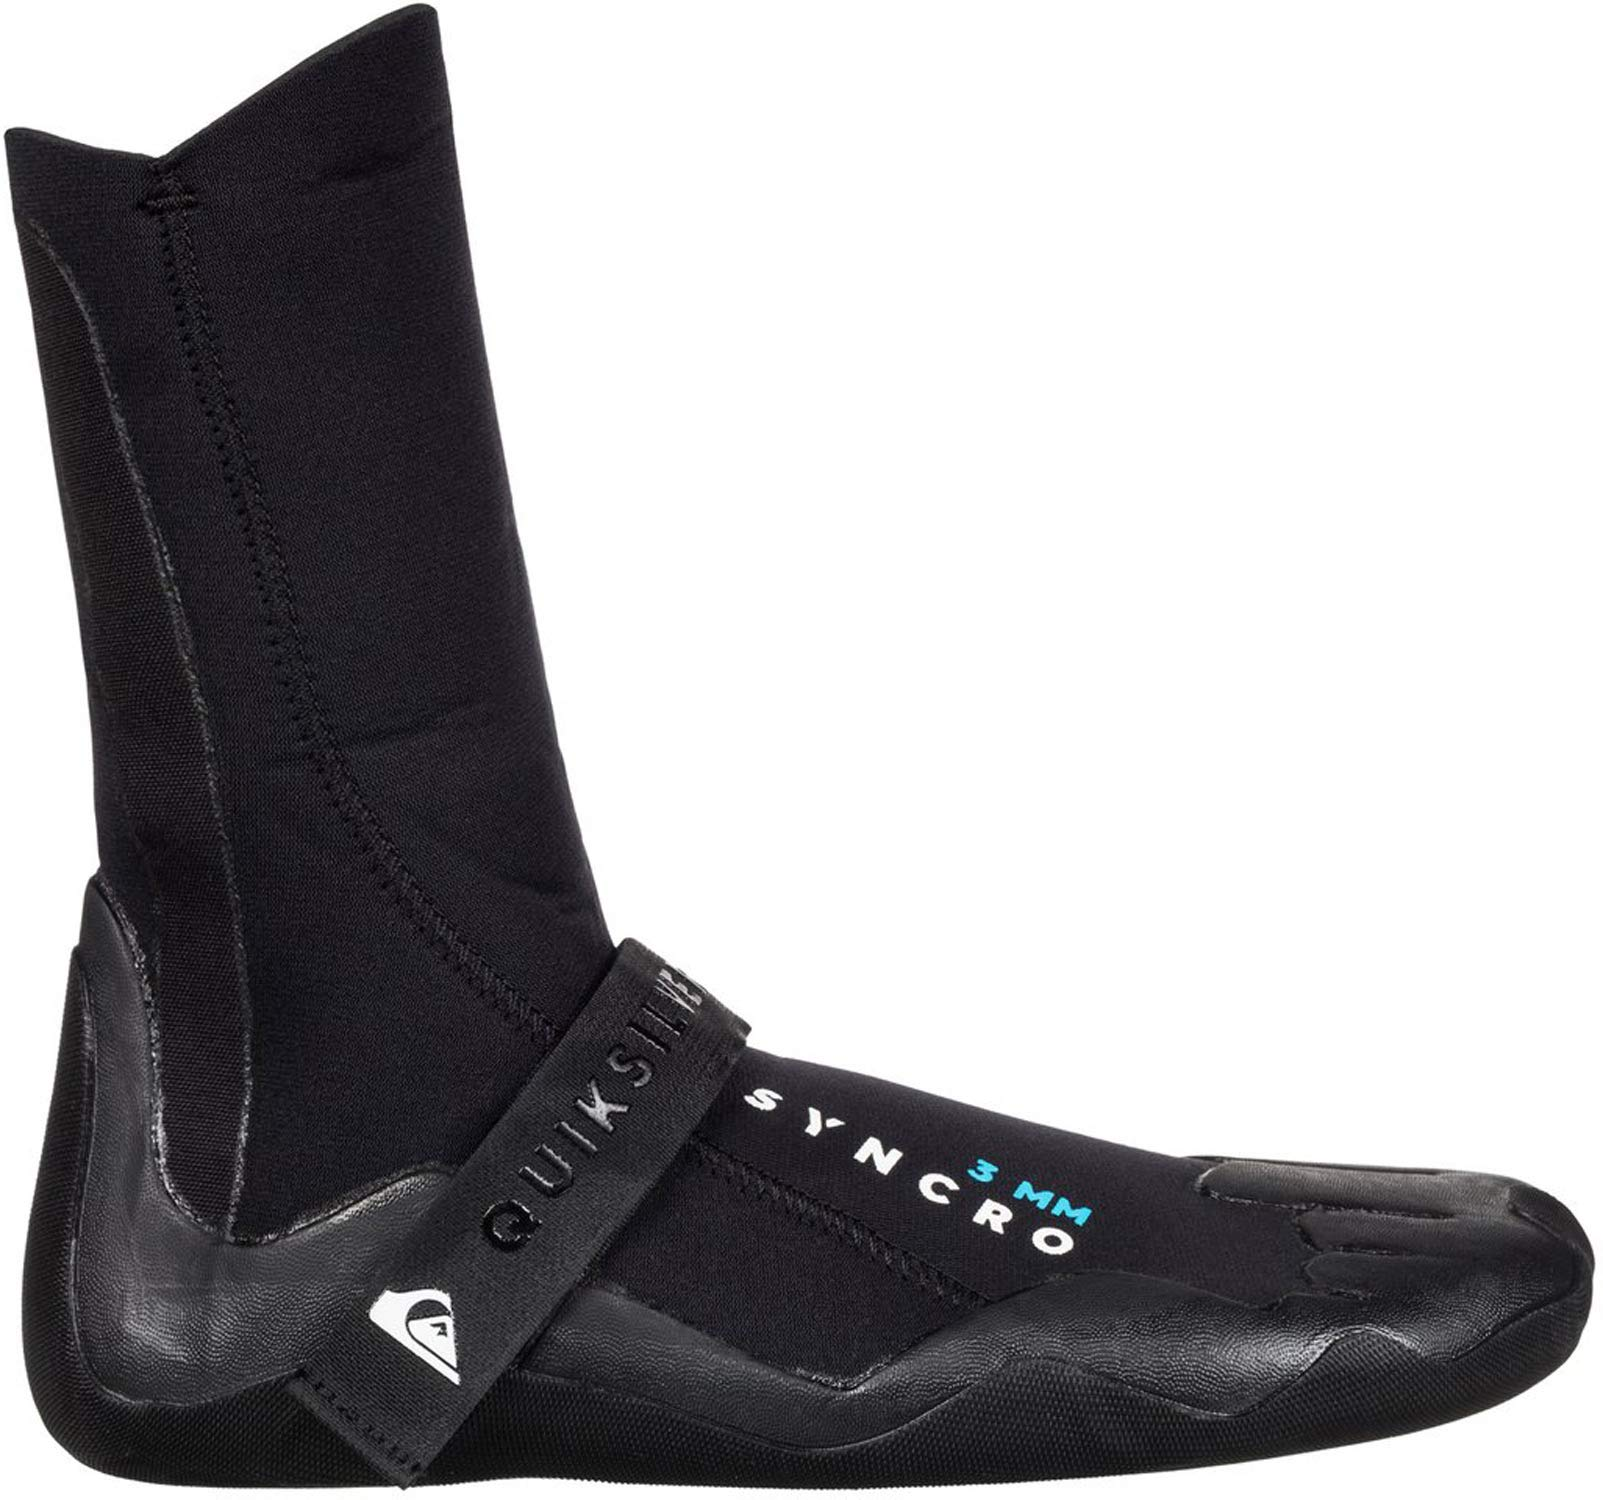 Quiksilver 3mm Syncro Round Toe Men's Watersports Boots - Black / 10 by Quiksilver